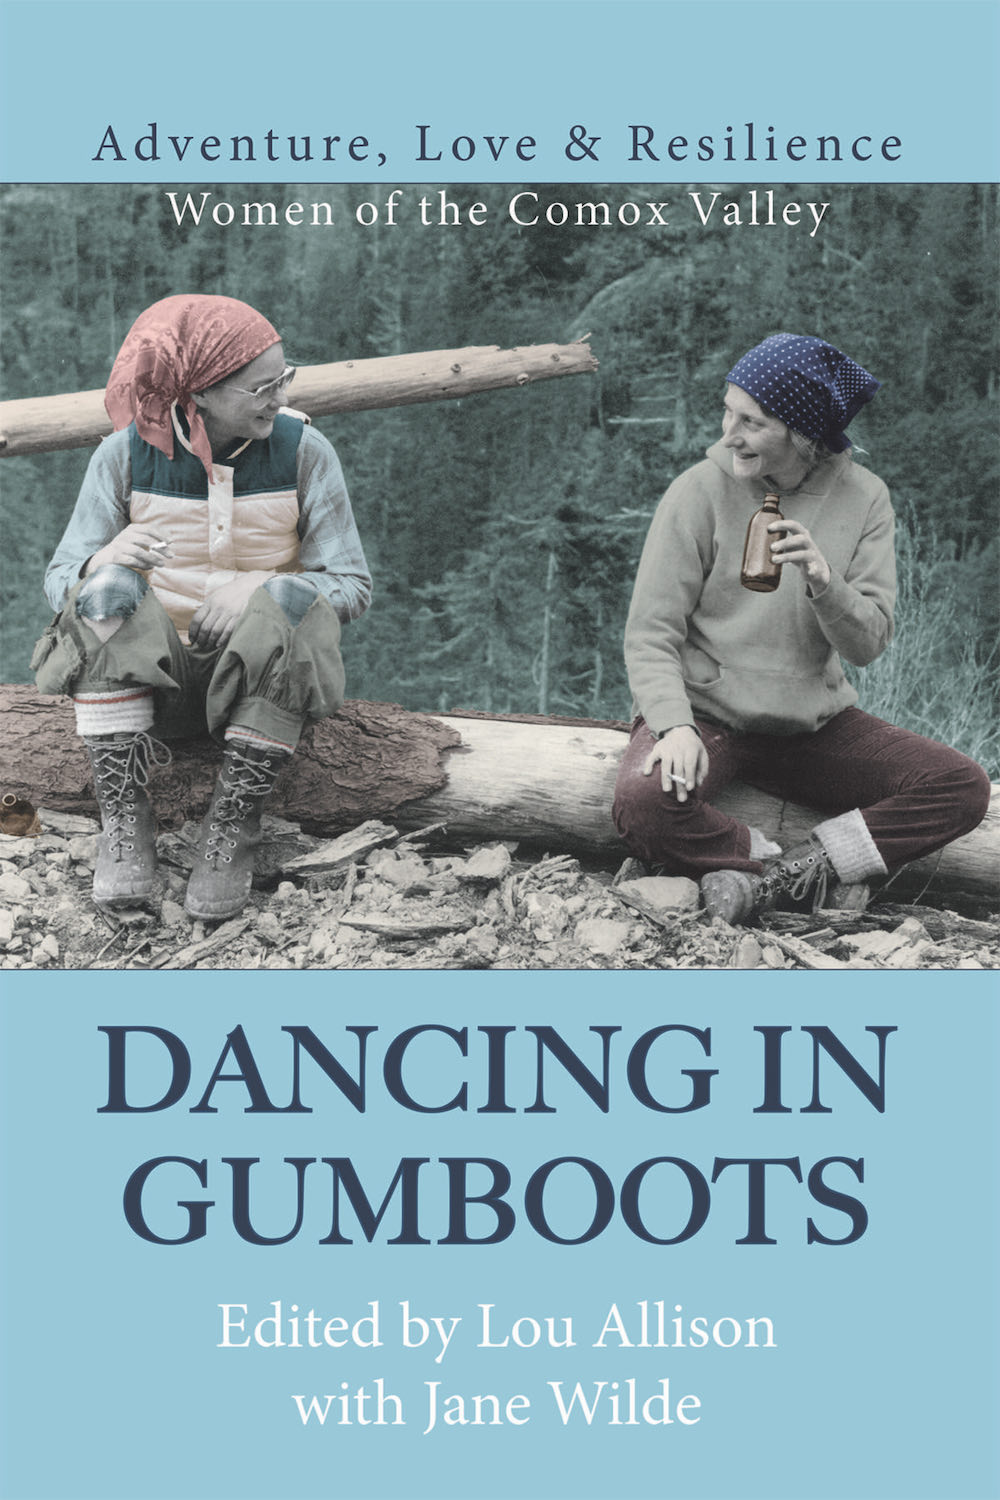 Dancing in Gumboots Title